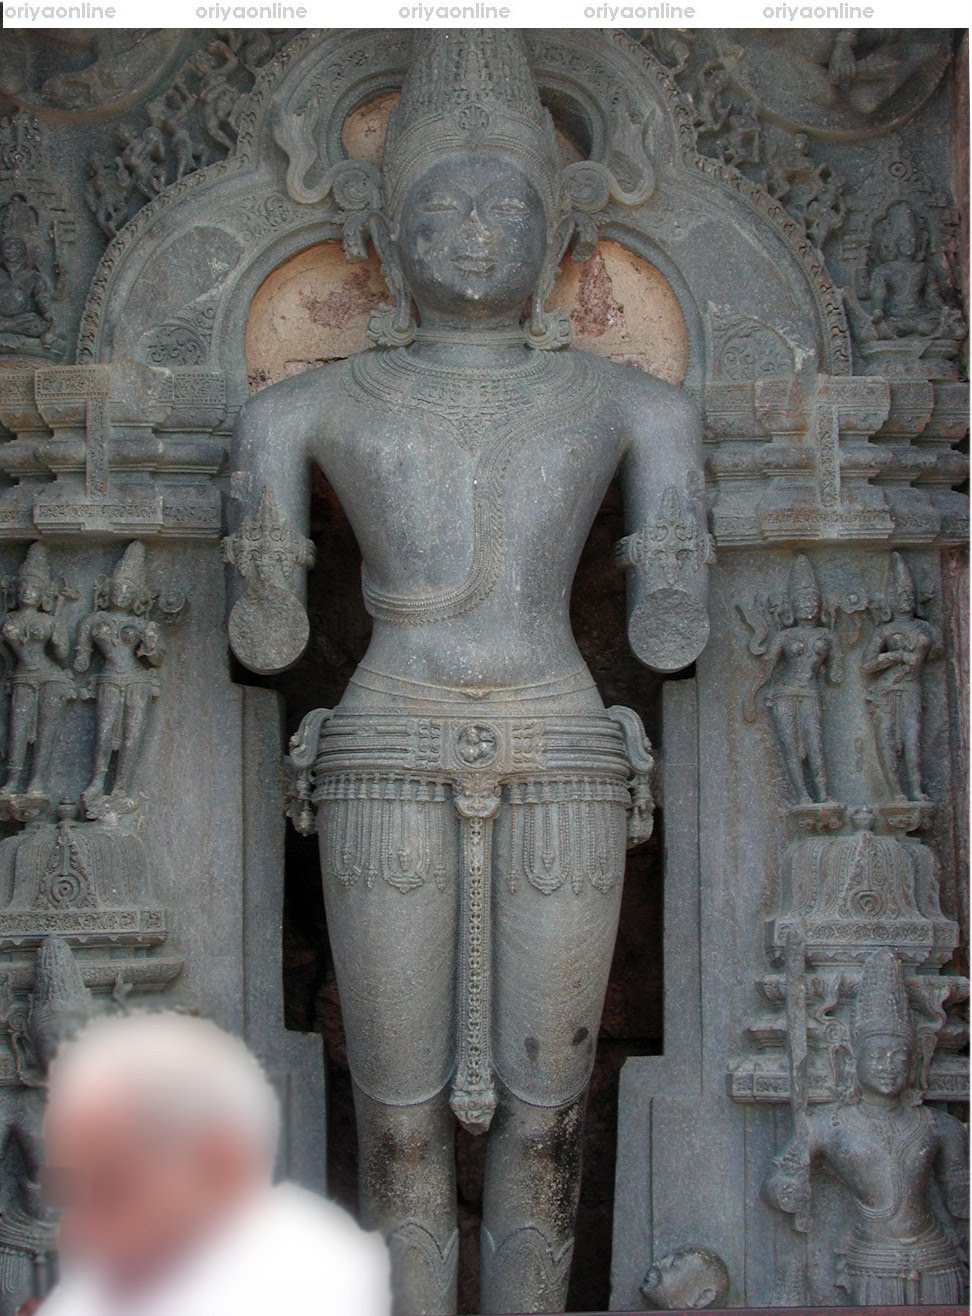 surya the sun god essay Surya narayana lord surya narayana is considered to be the prime of the universe the rays of the sun is the source of all lights in the universe all the beings are born, nurtured and deceased.